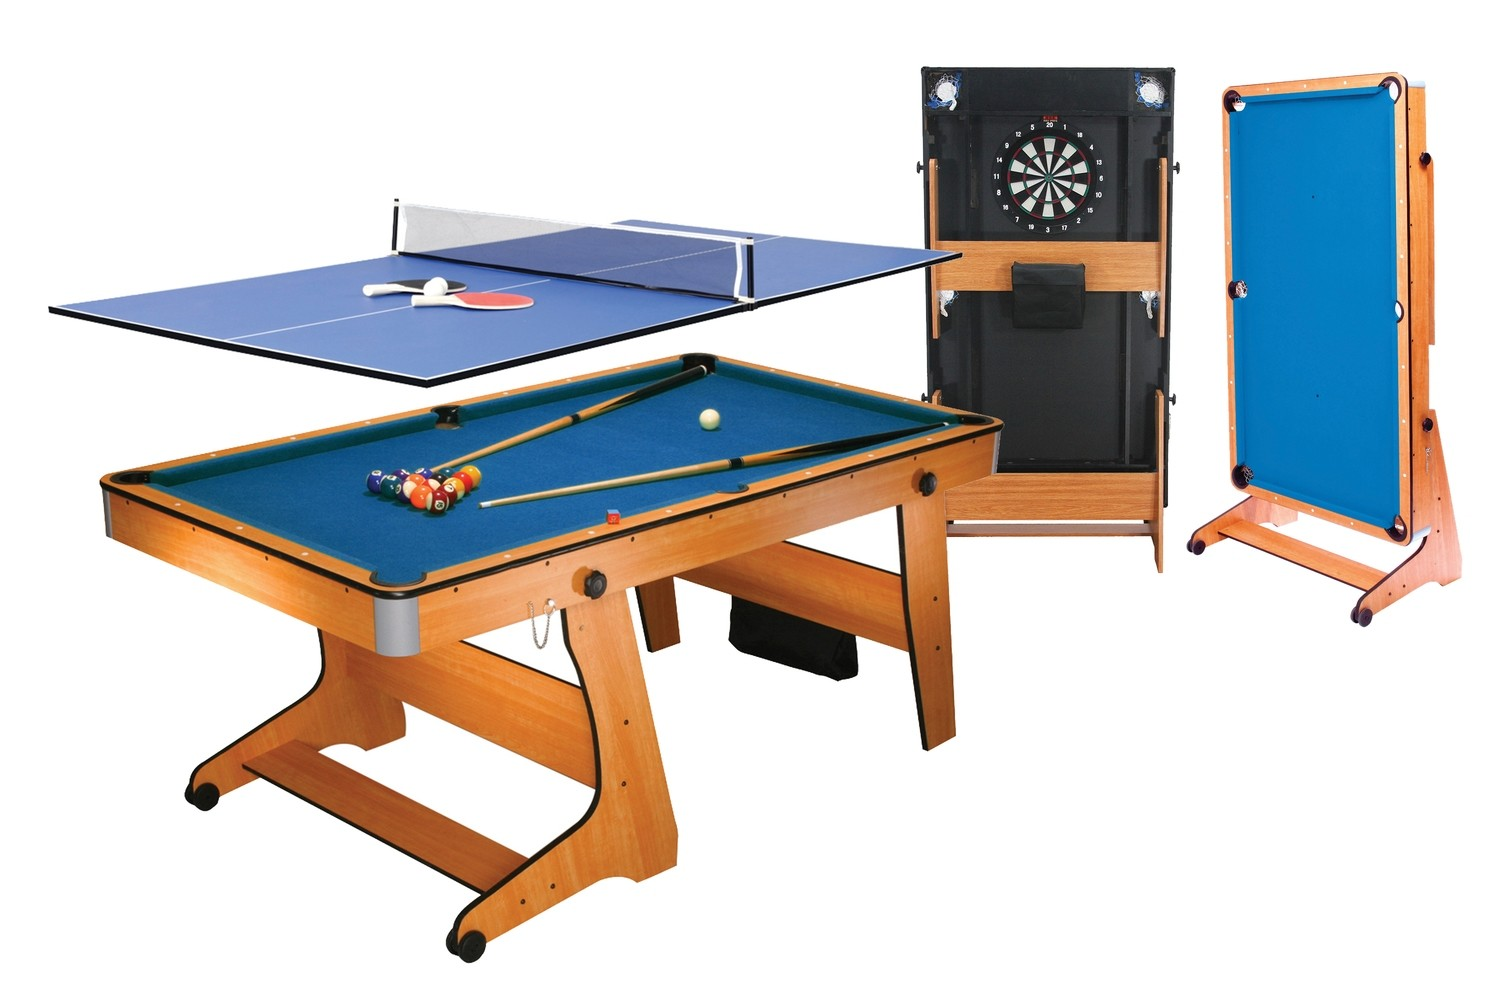 BCE Folding 3 in 1 Pool Table - Blue Cloth/ Beech Finish 6ft with Table Tennis Top - Folds Vertically